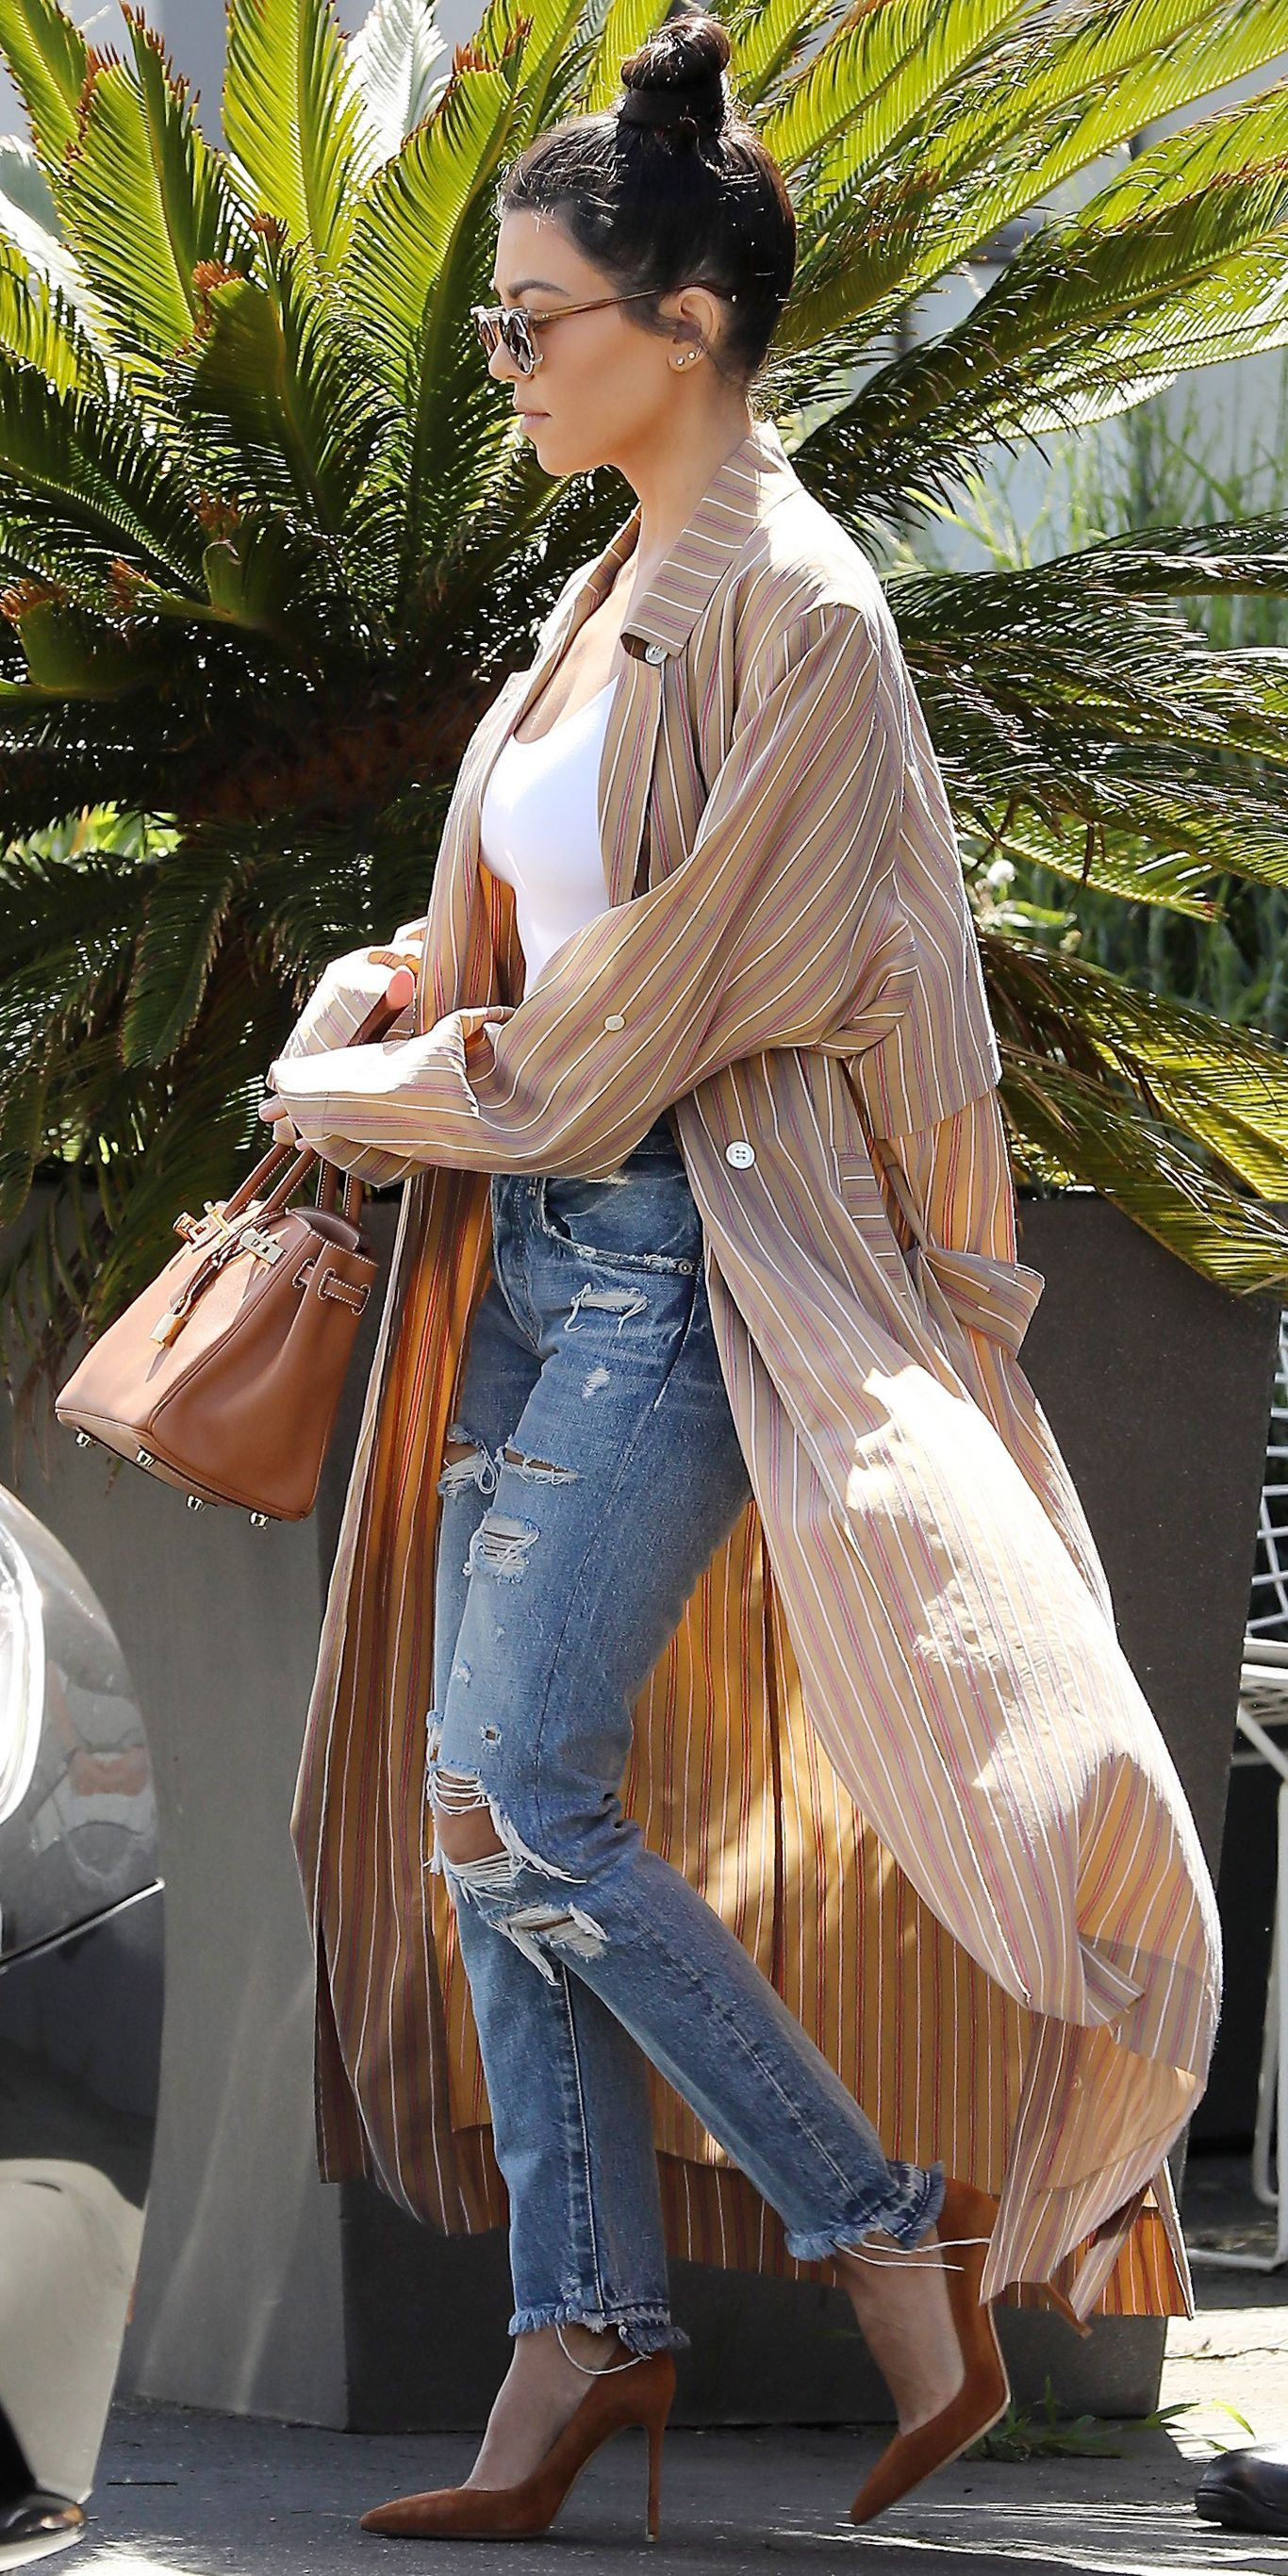 Kourtney Kardashian s Best Street Style Looks - March 30 f31ef38d3e8e8